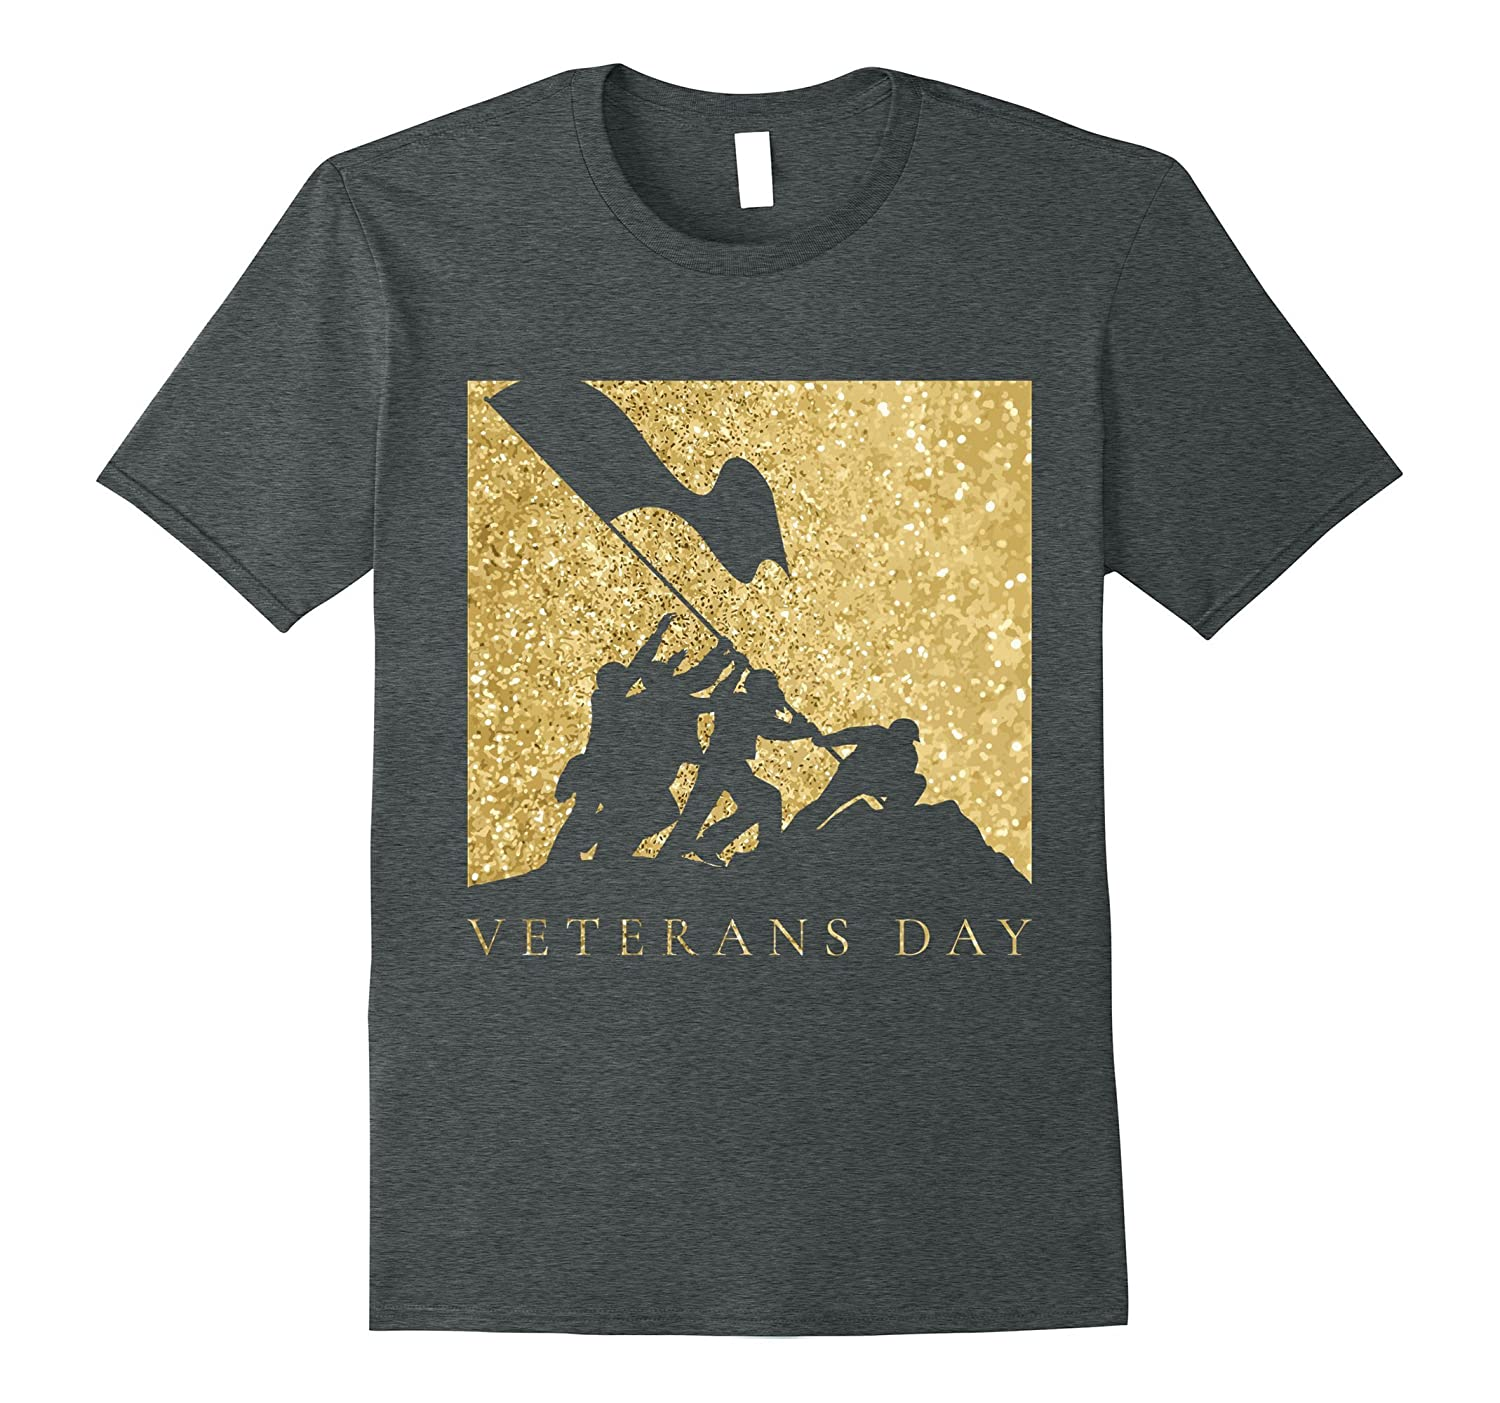 Soldier Veterans Day T-Shirt Thank you Veteran